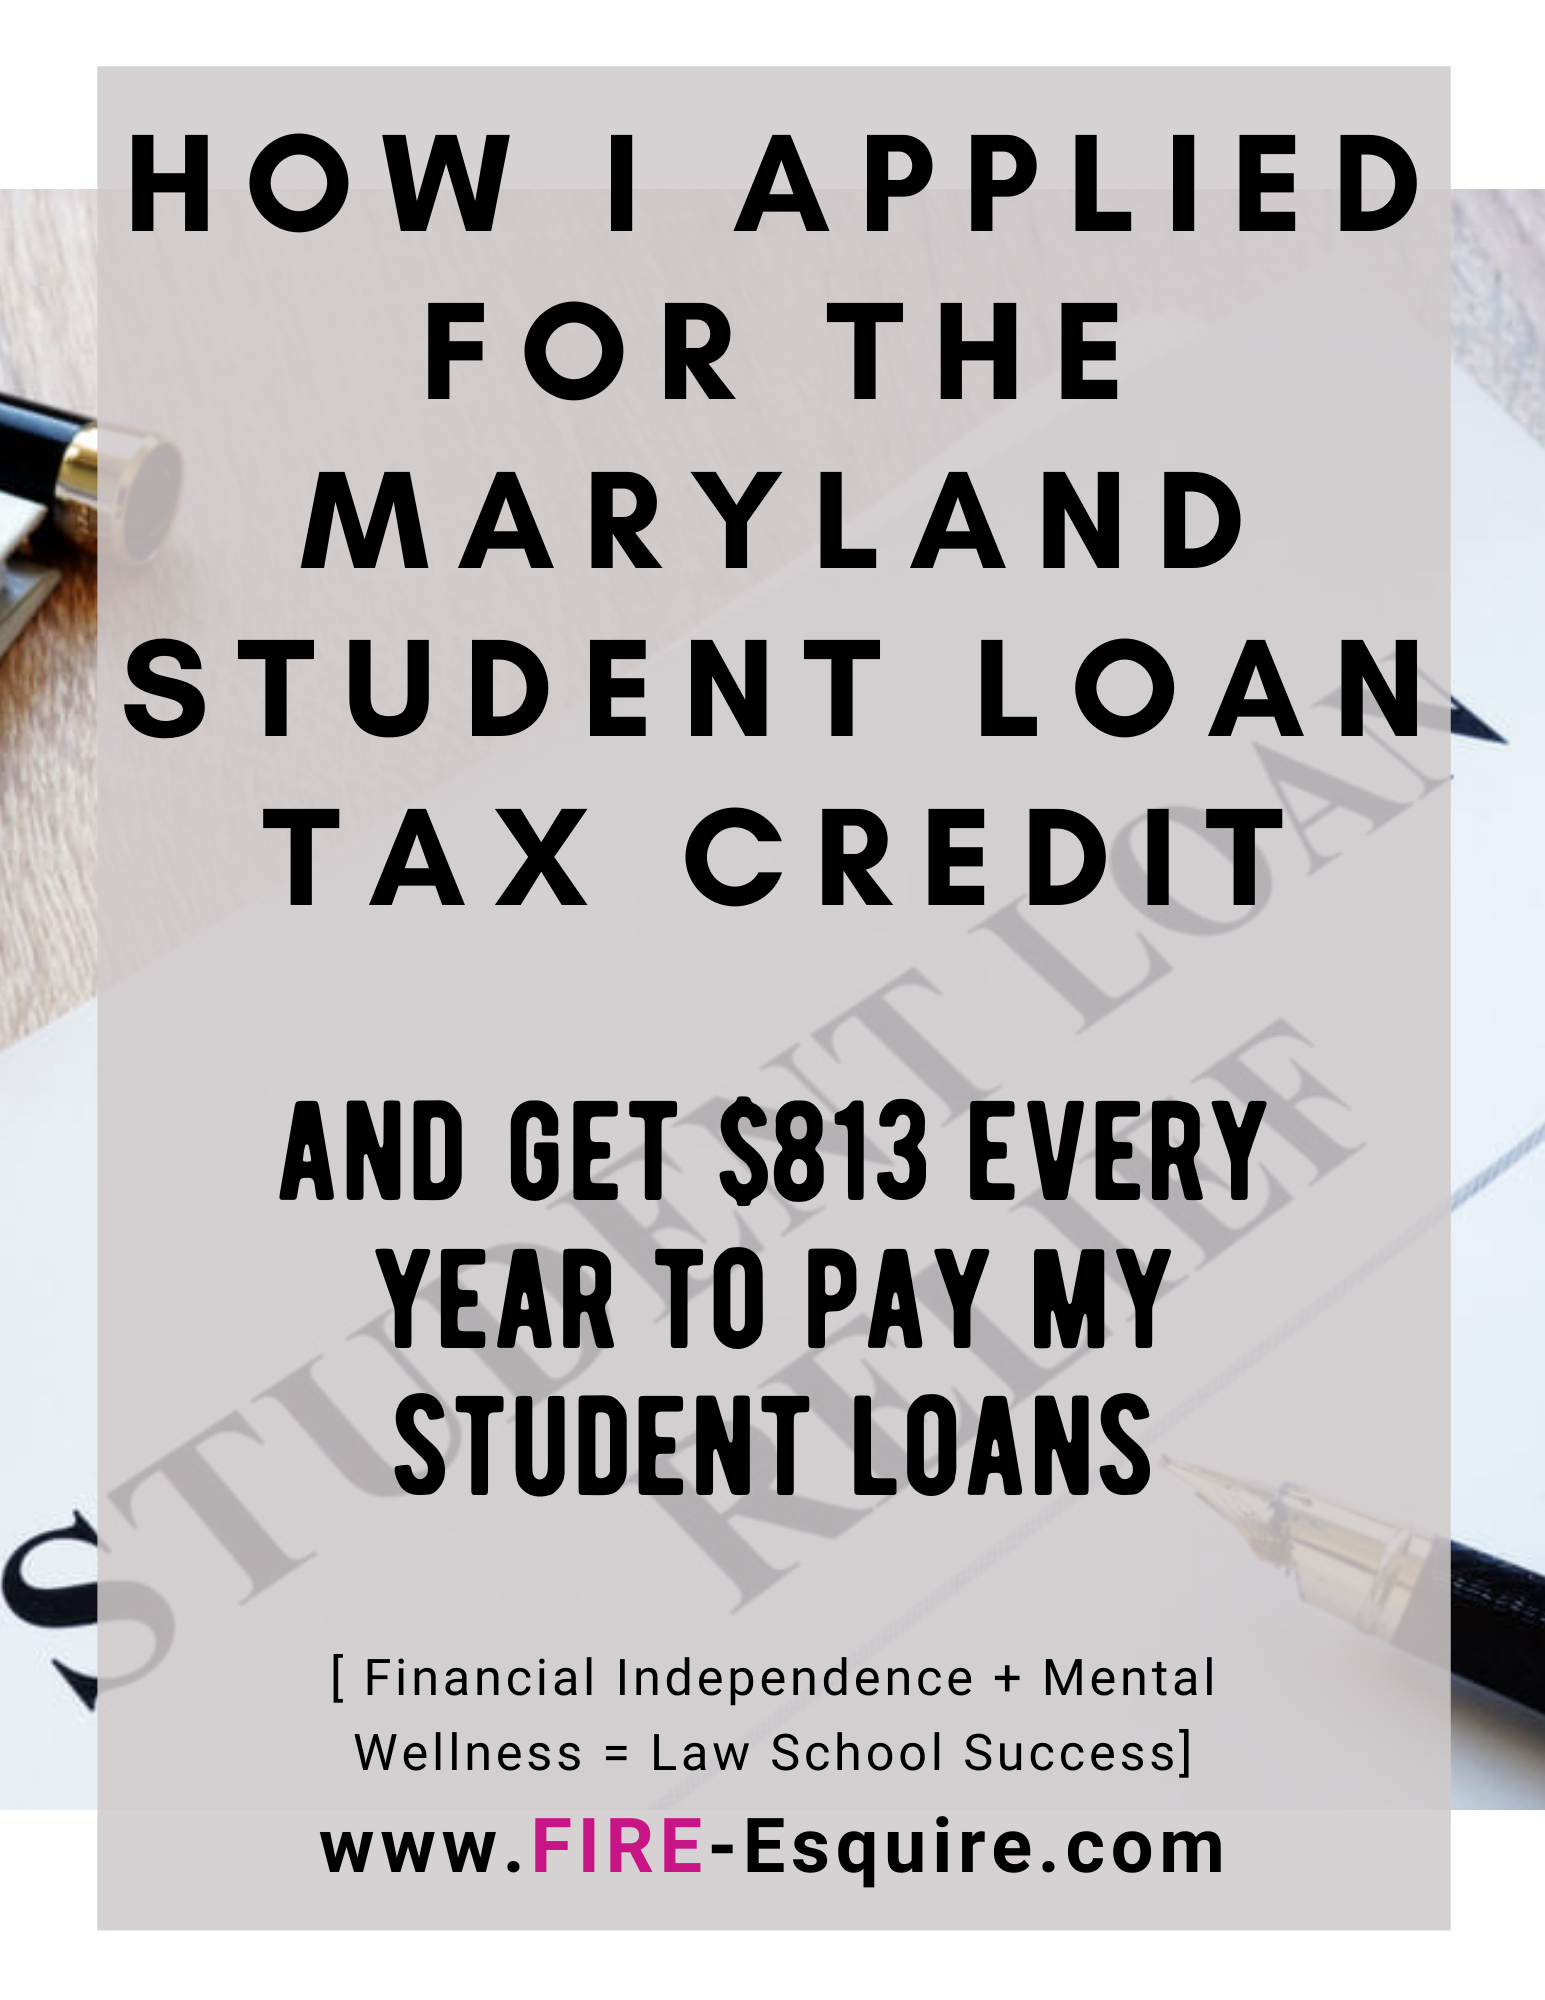 How I Applied For The Maryland Student Loan Tax Credit Fire Esquire In 2020 Tax Credits Student Loans Student Debt